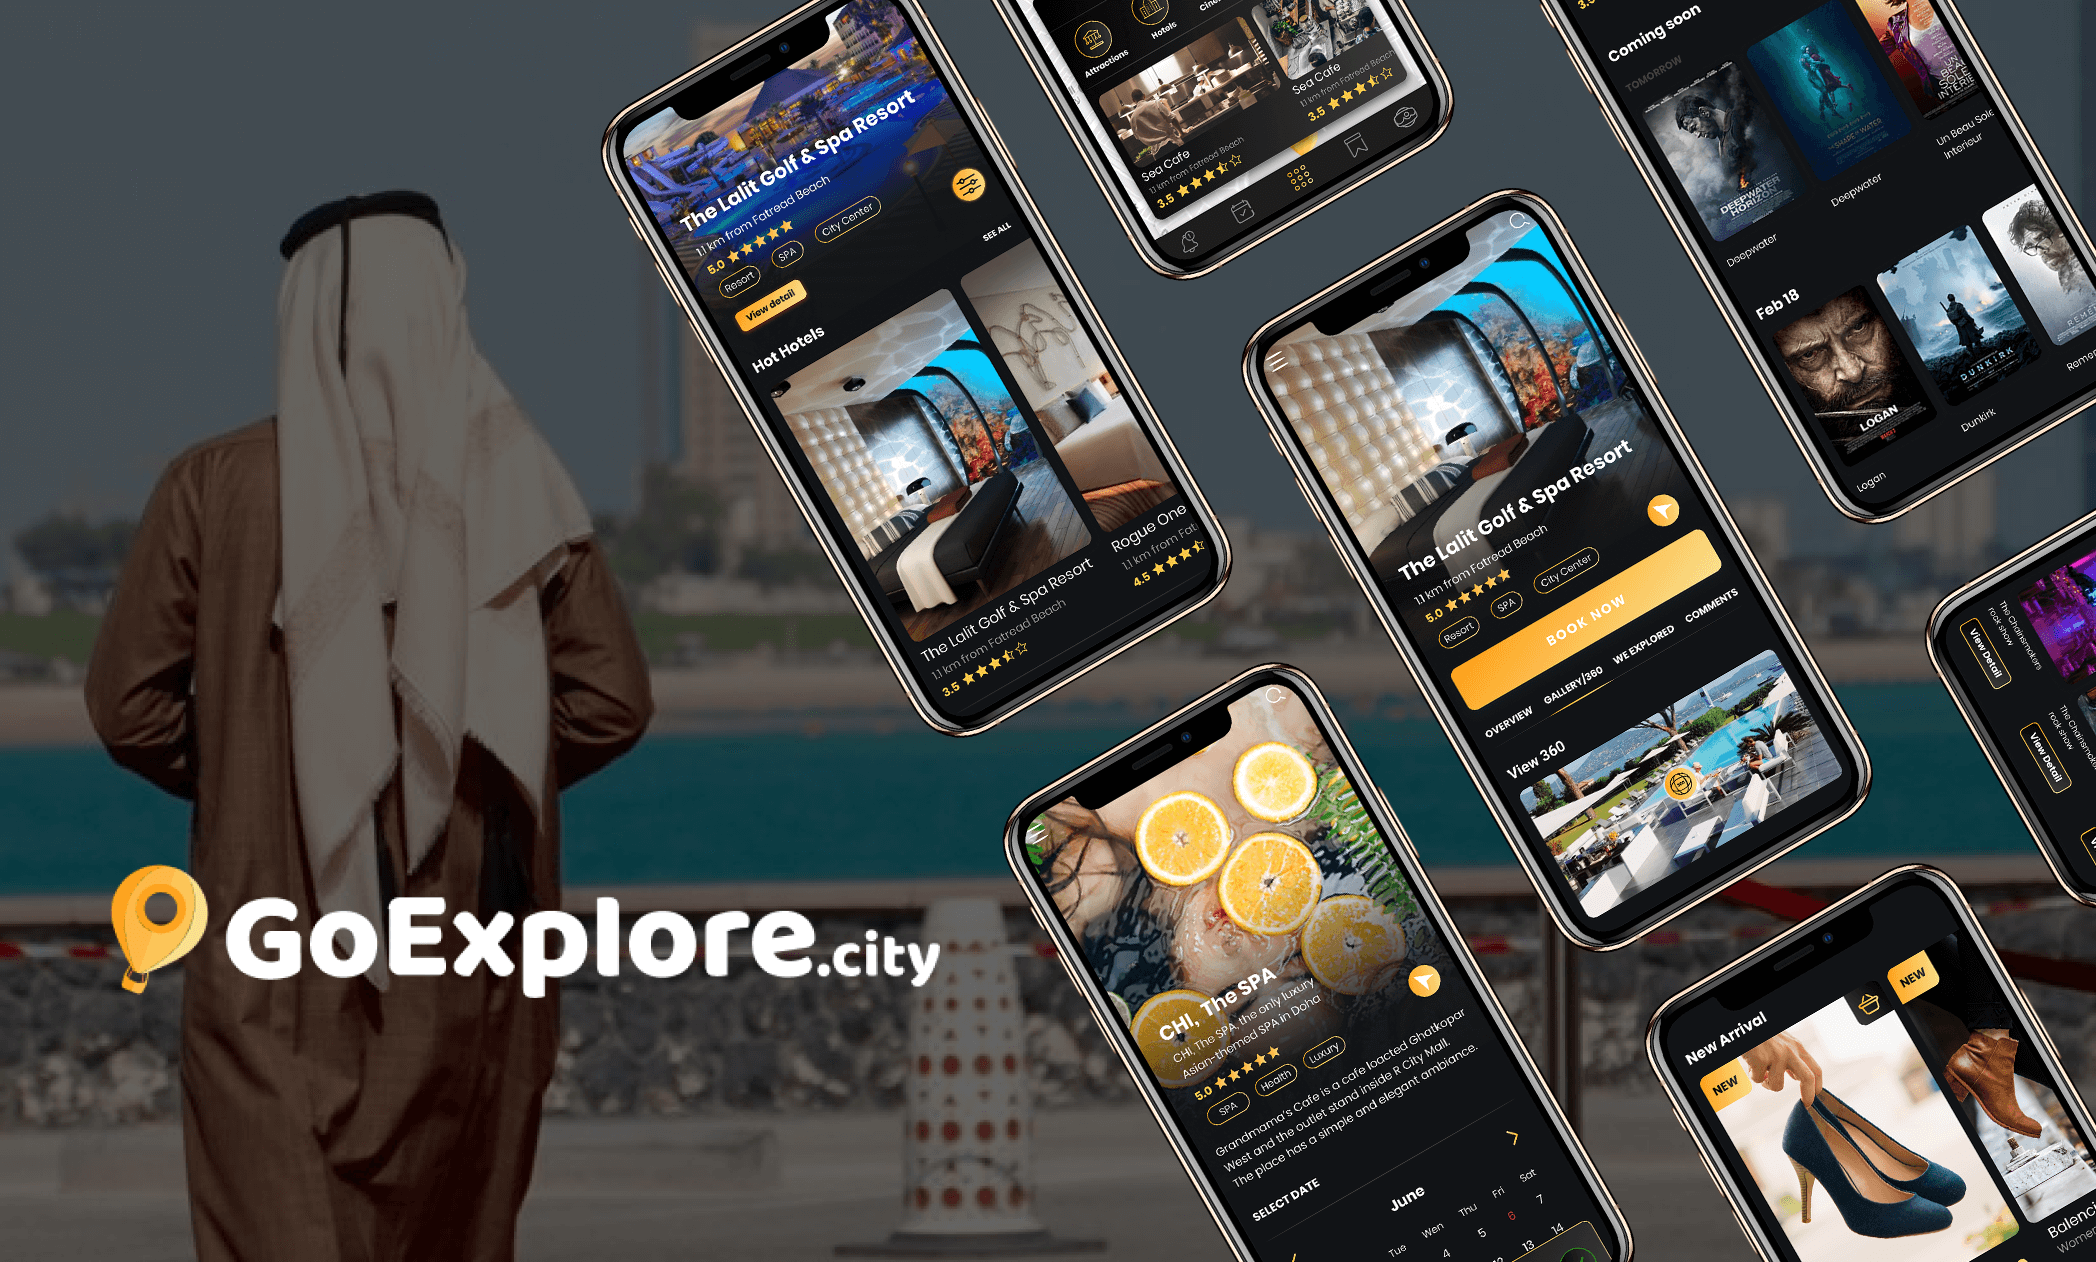 GoExplore.city